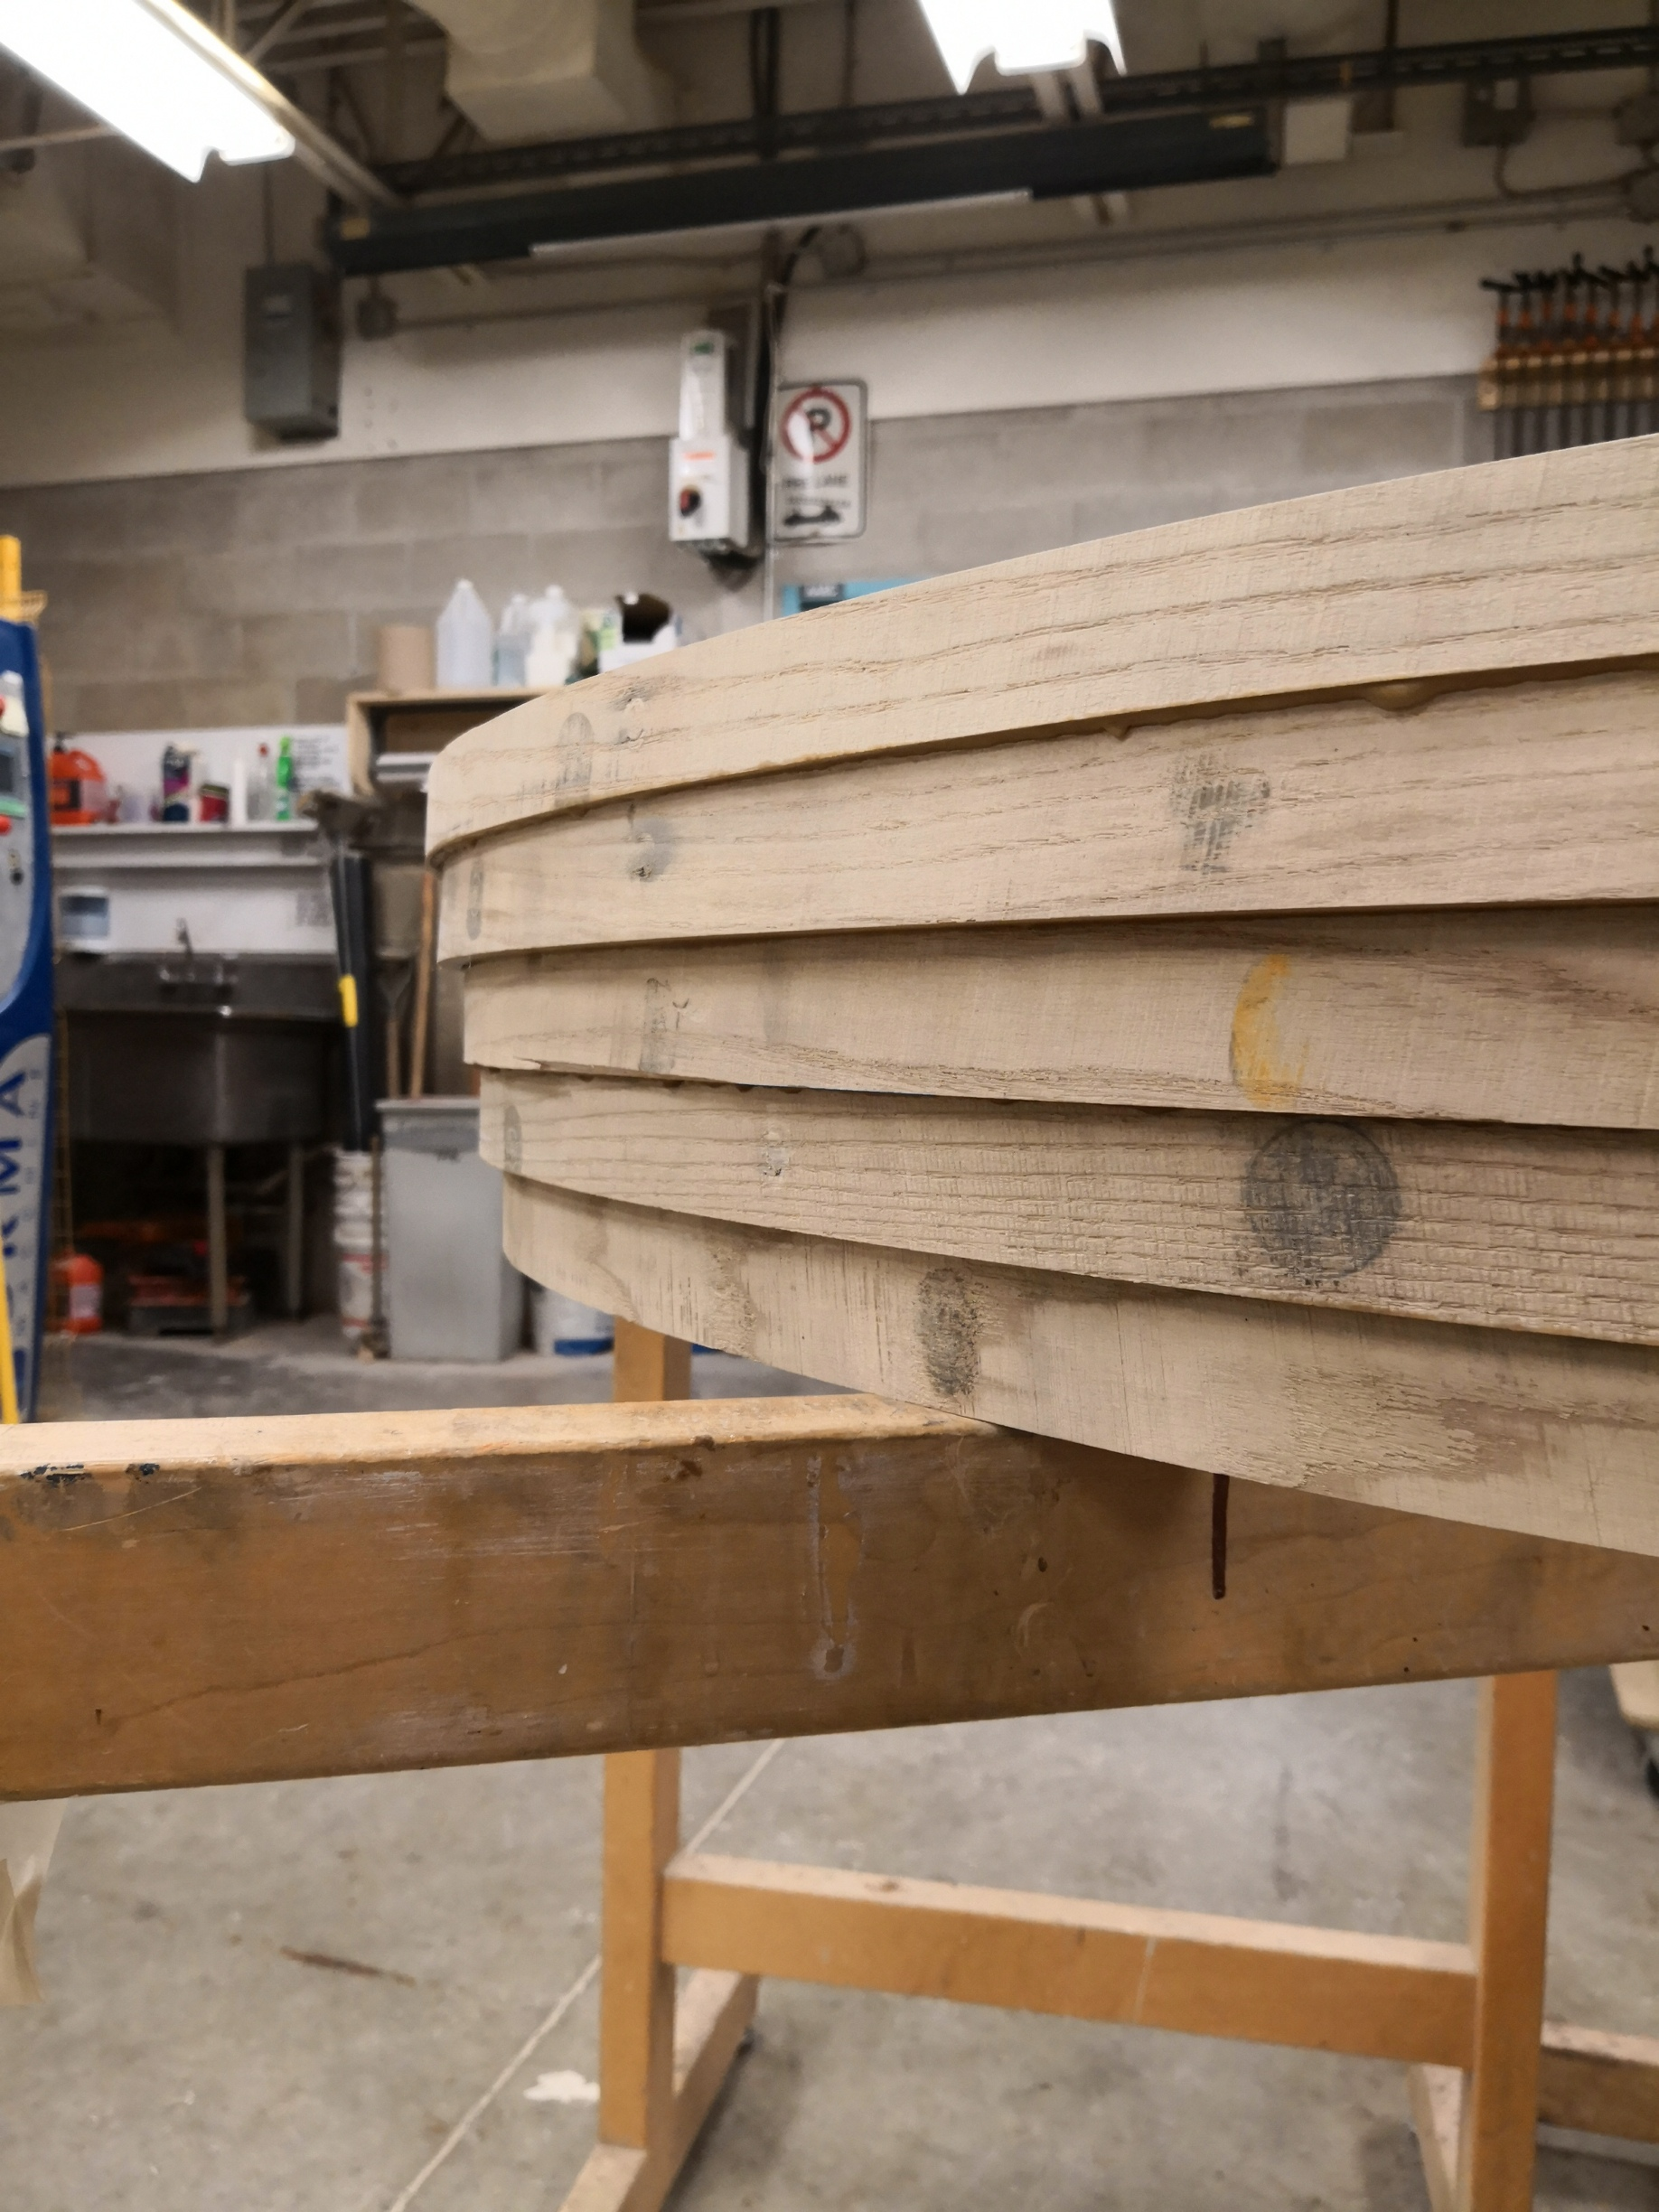 Five pieces are glued in staggered order